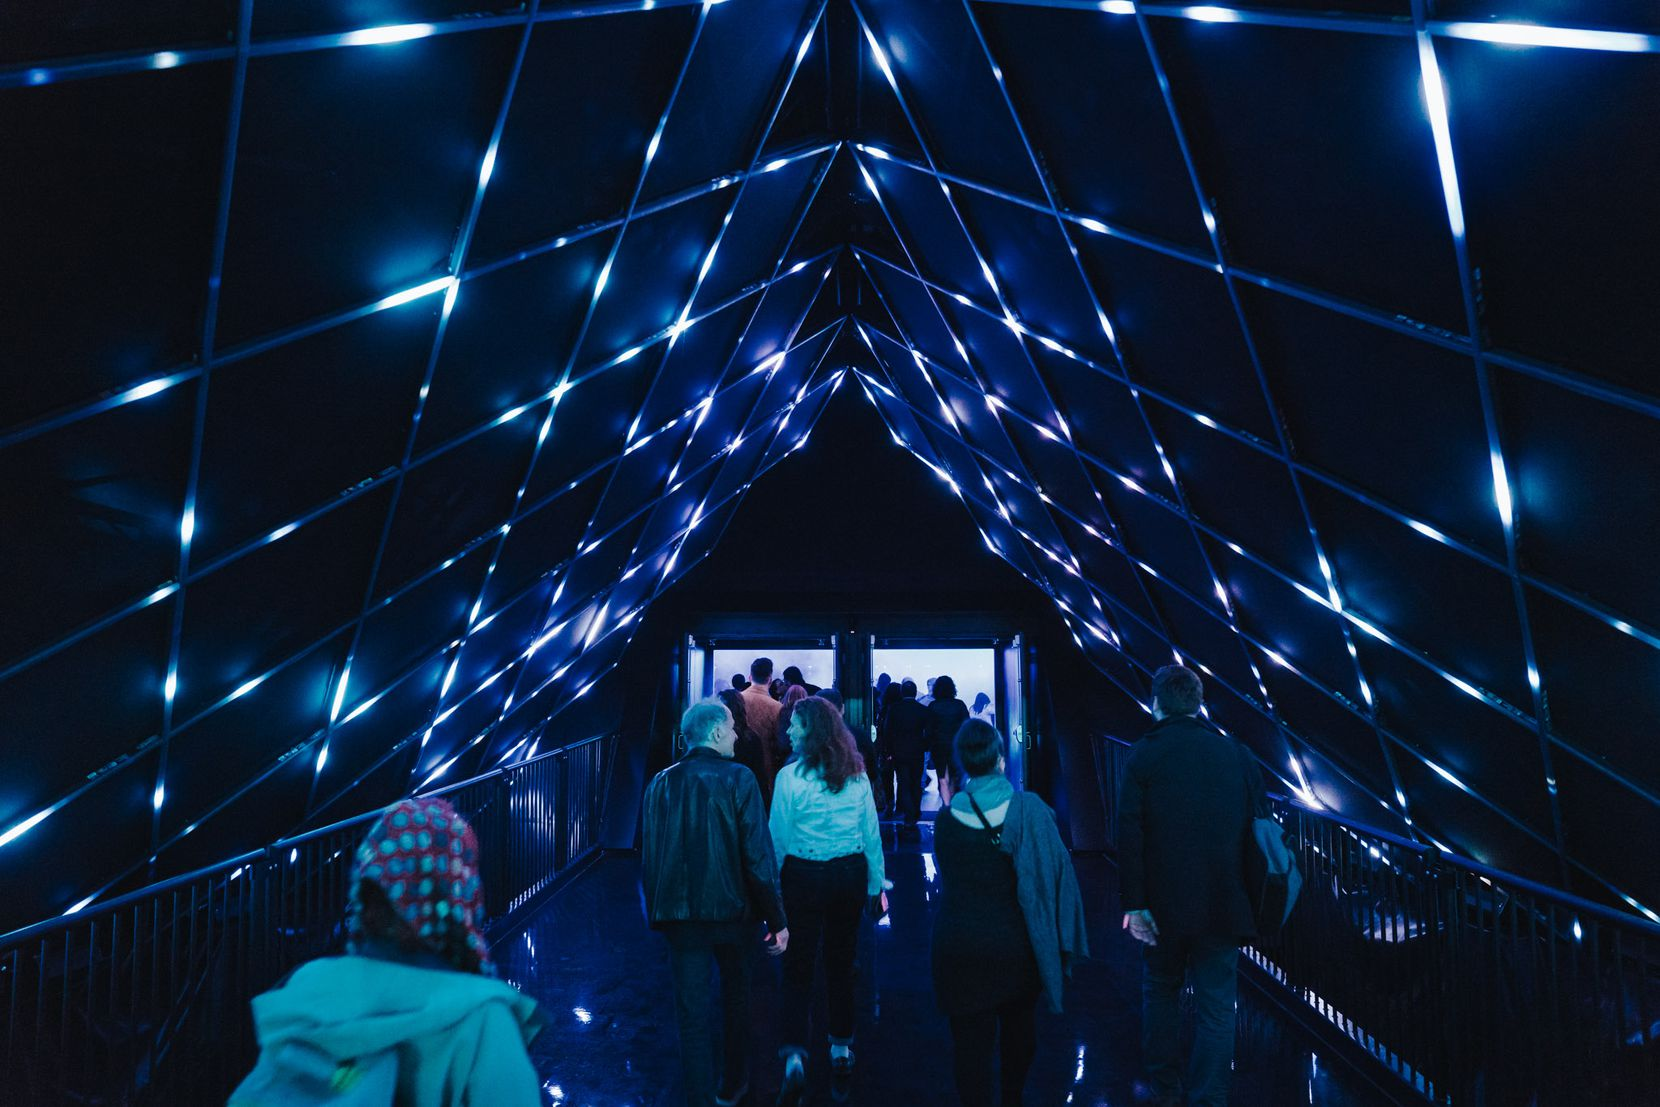 """Inside PY1's 81-foot-tall pyramid-shaped space, guests can view two shows — """"Stella: The Time Machine Journey"""" and """"Through the Echoes"""" — or attend PY1 Nights, a nightlife experience with DJs."""